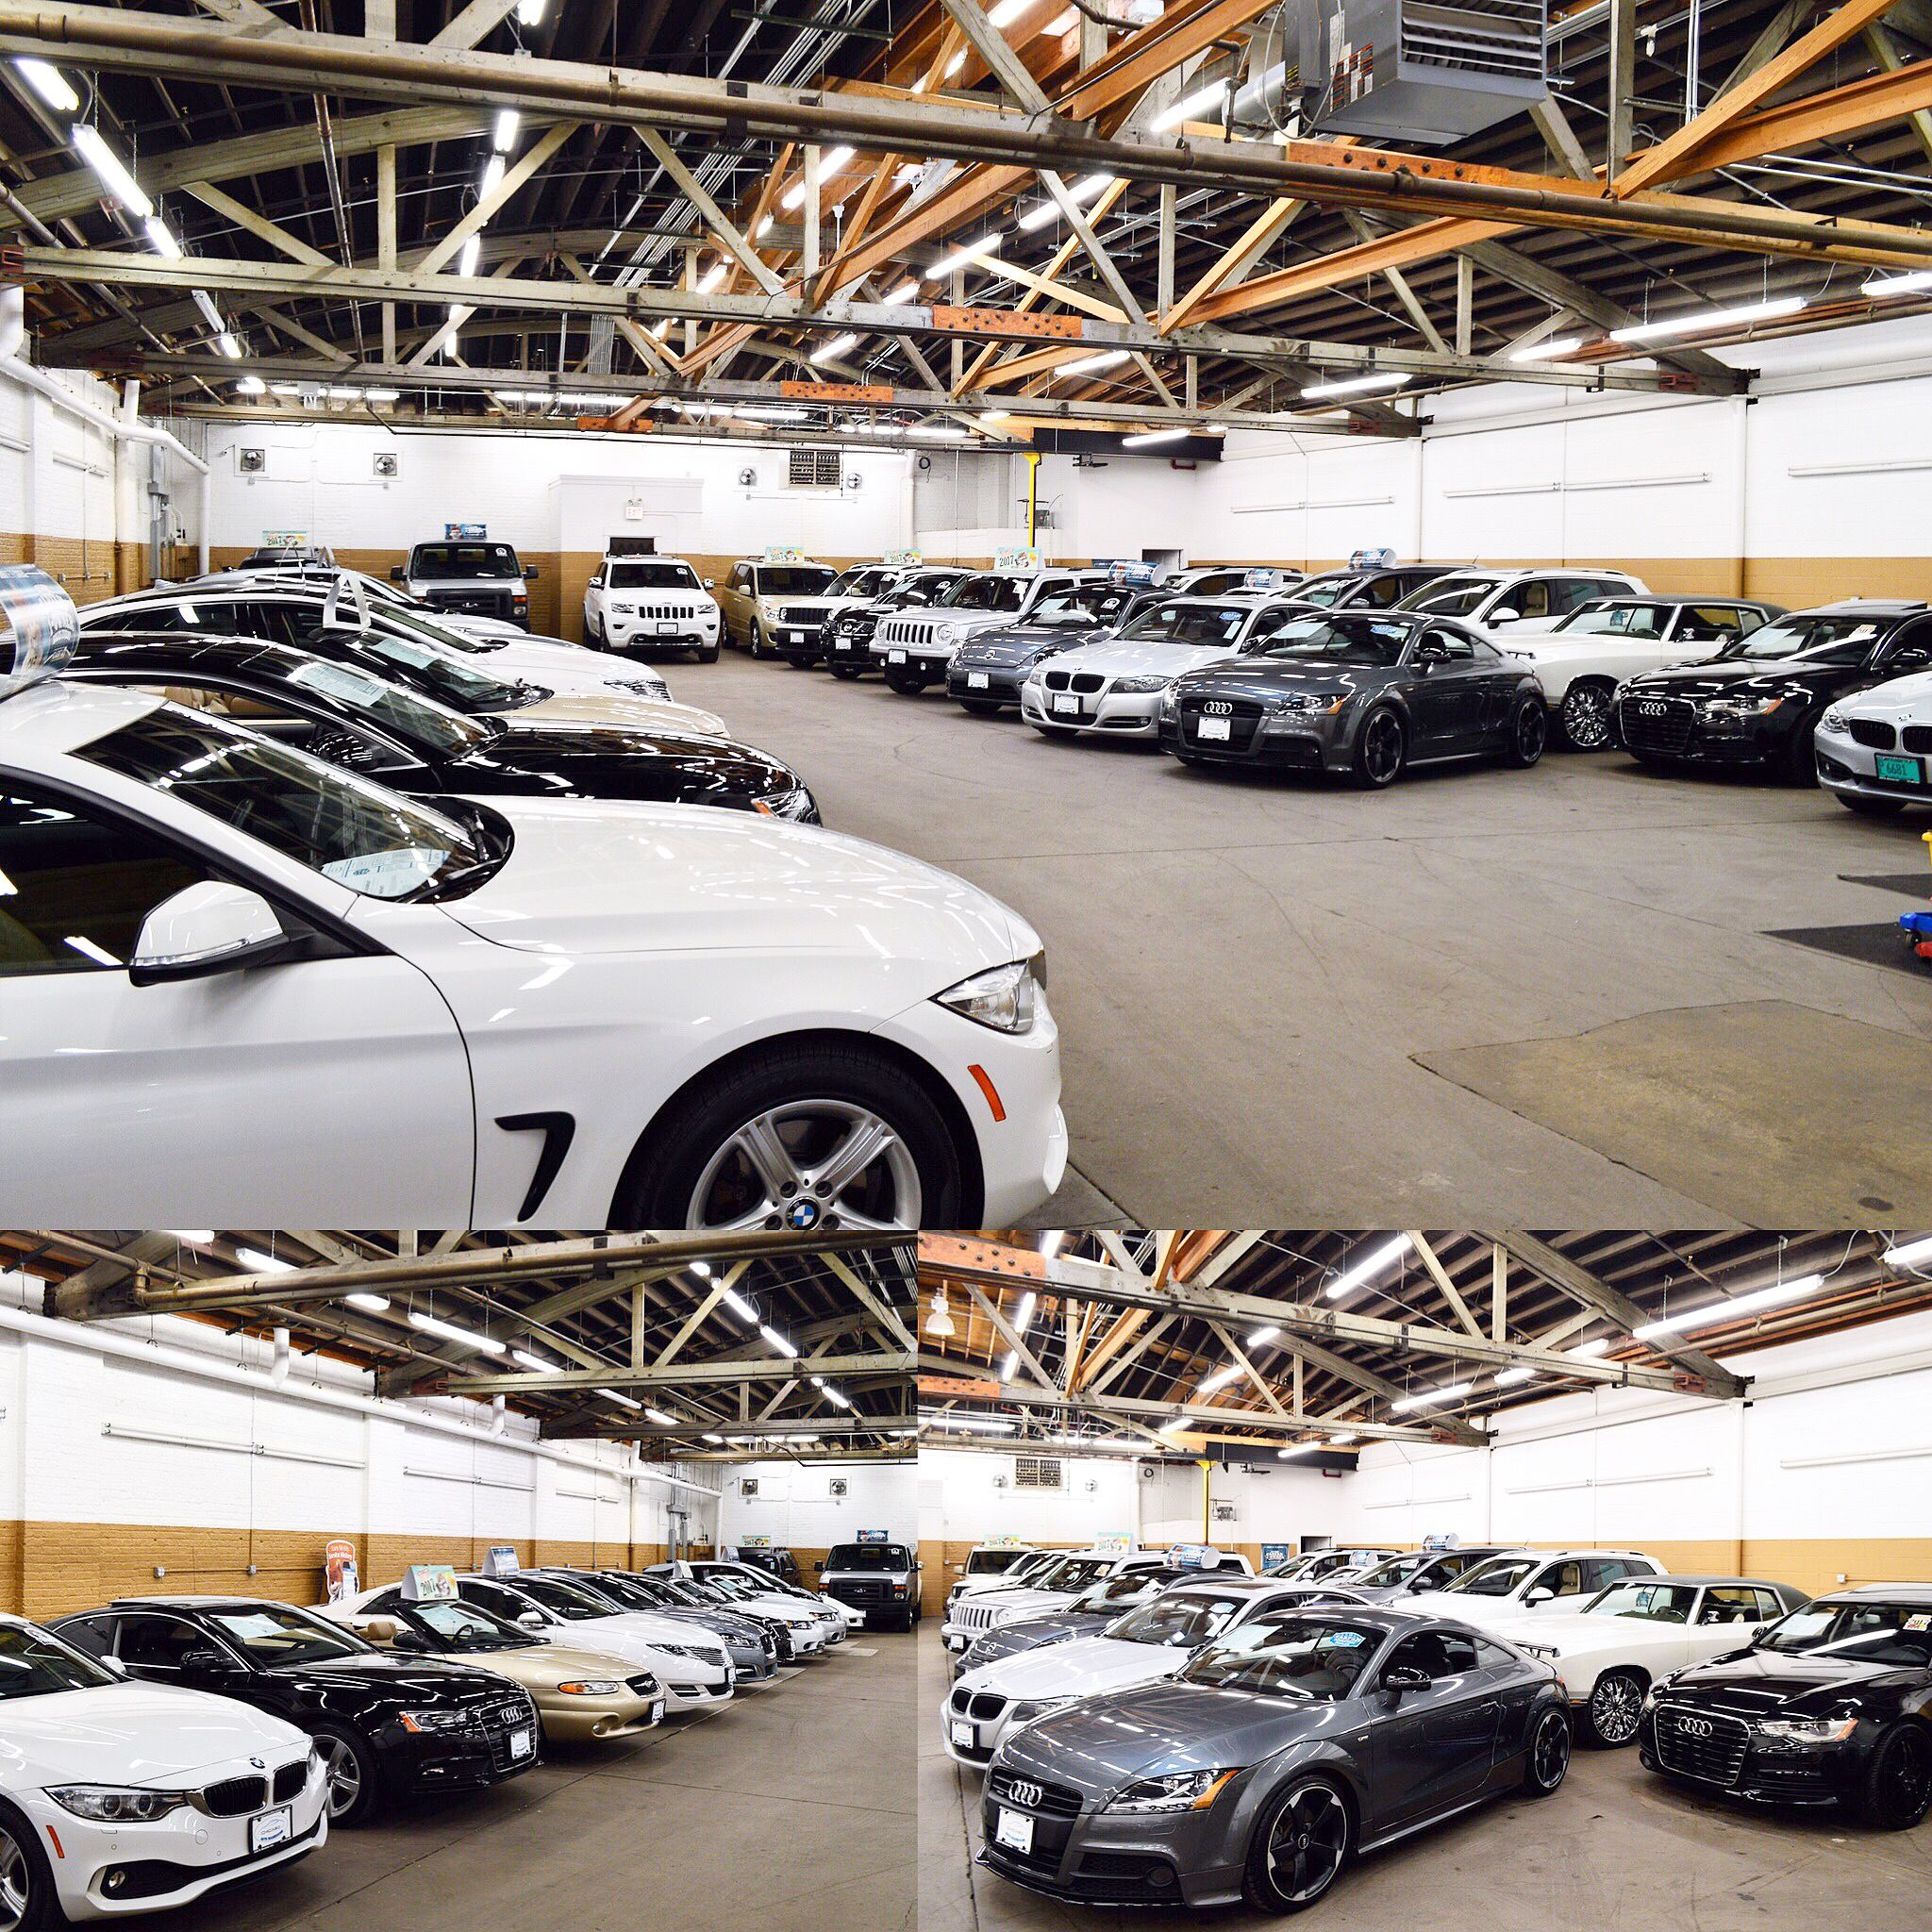 Chicago Auto Warehouse Quality Pre Owned Vehicles At Affordable Prices 3325 W Montrose Ave Chicago Il 60618 Call Us To Albany Park Cars For Sale Car Dealer